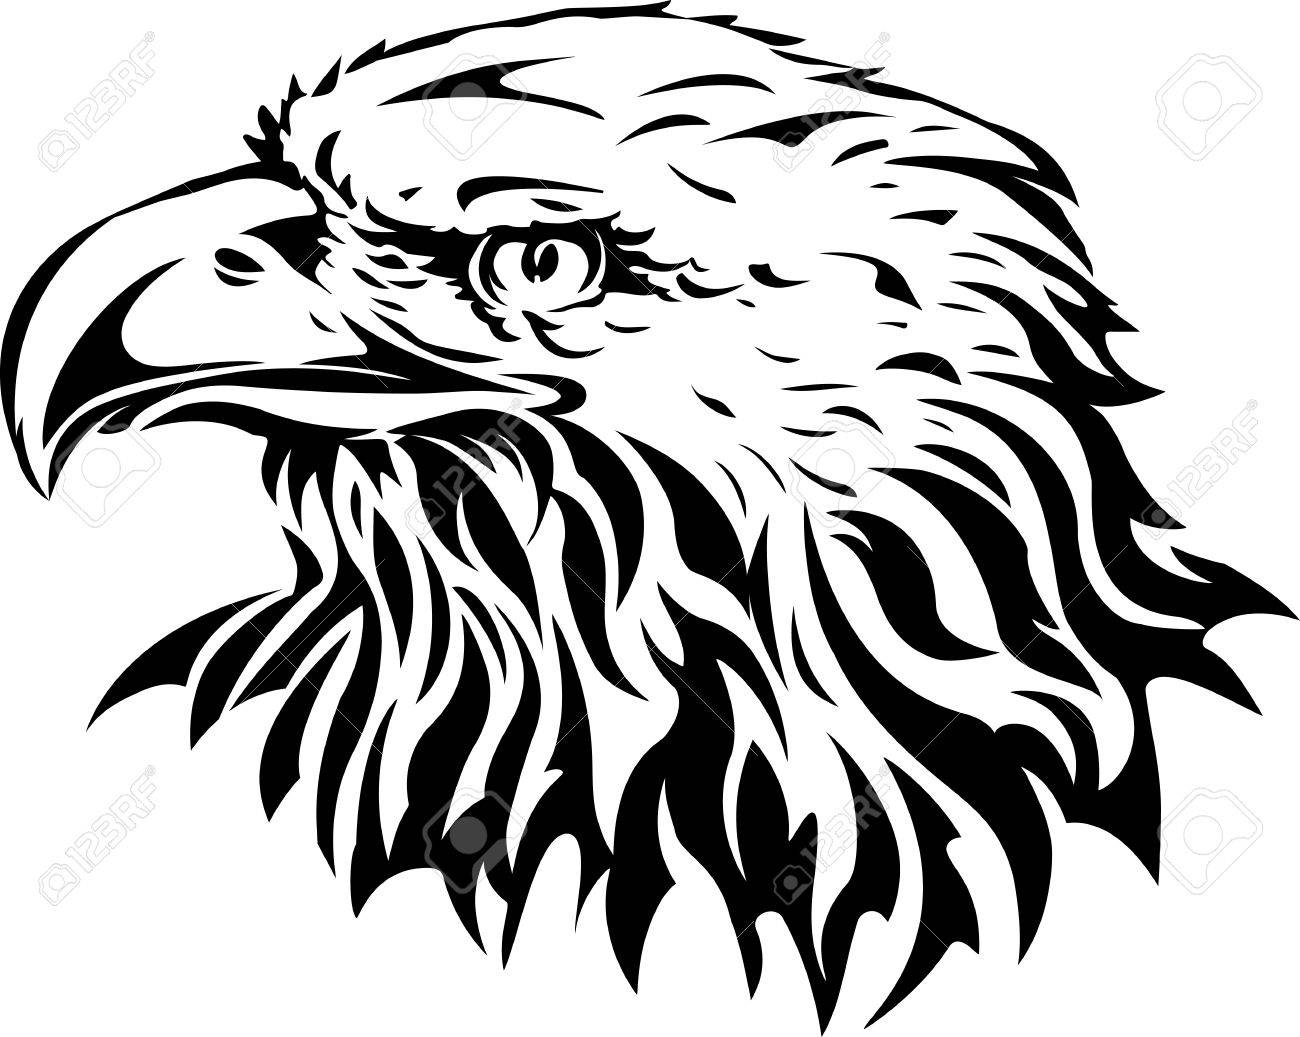 eagle head silhouette flying eagle png clip art image flying eagle silhouette eagle silhouette head